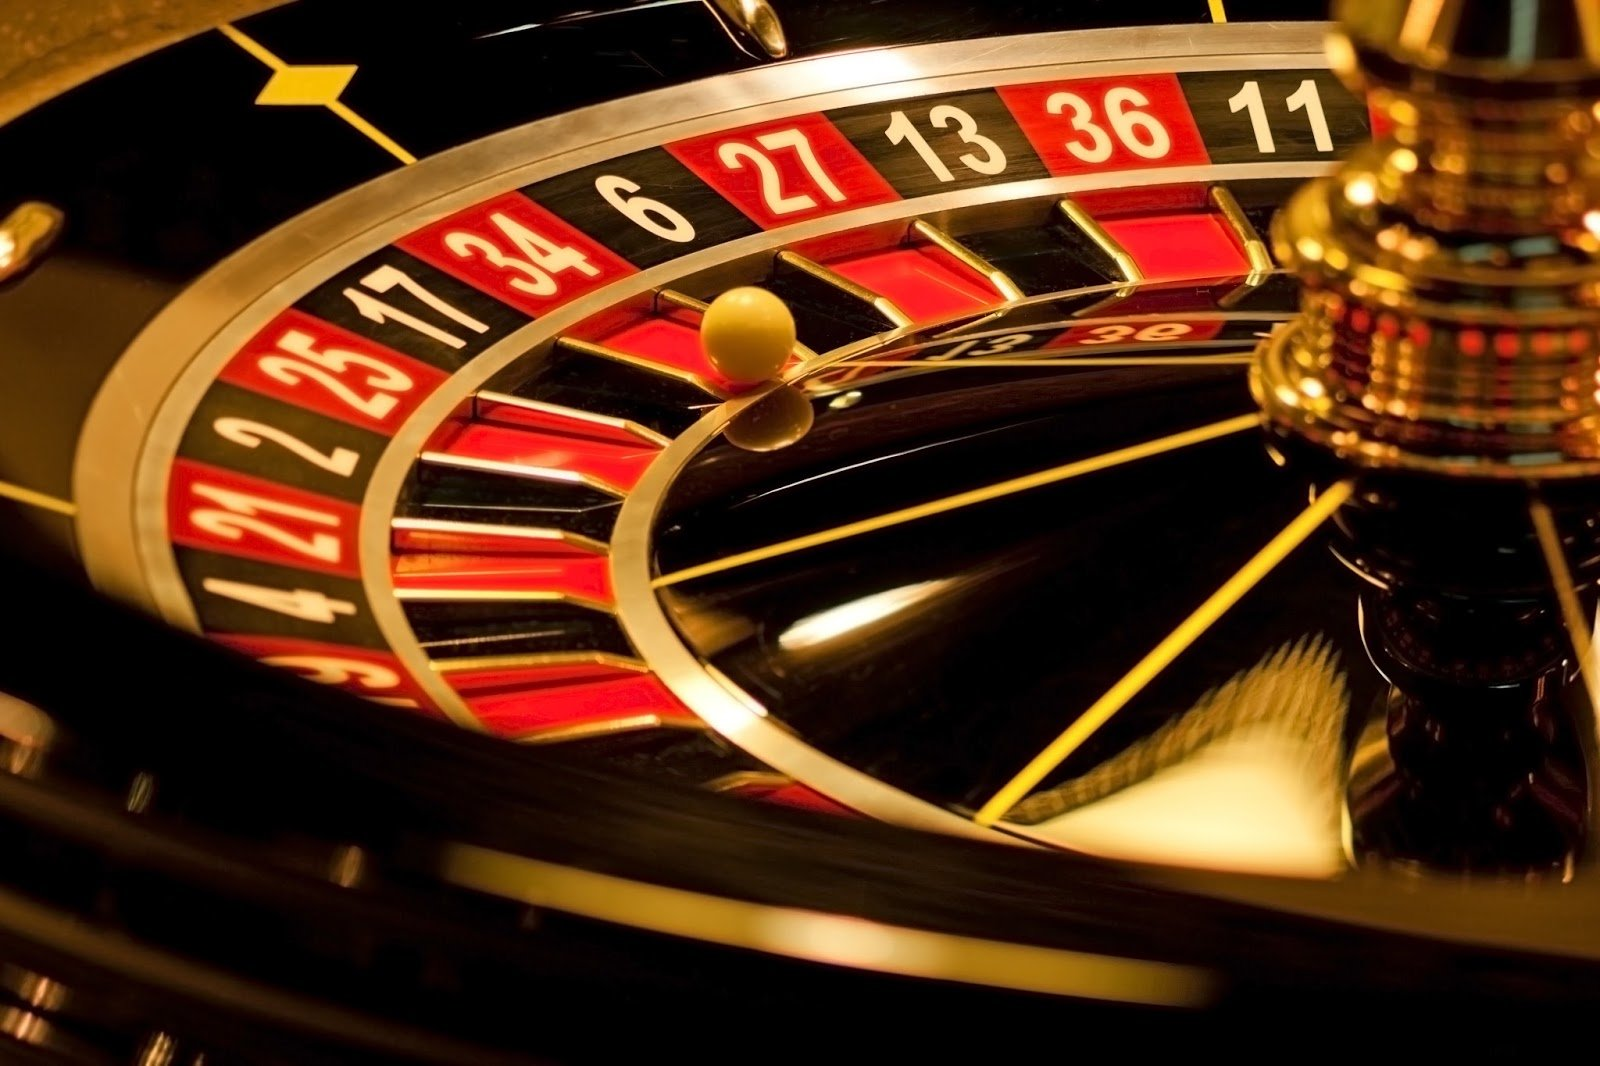 European Roulette Online and Get Extra Benefits Gambling